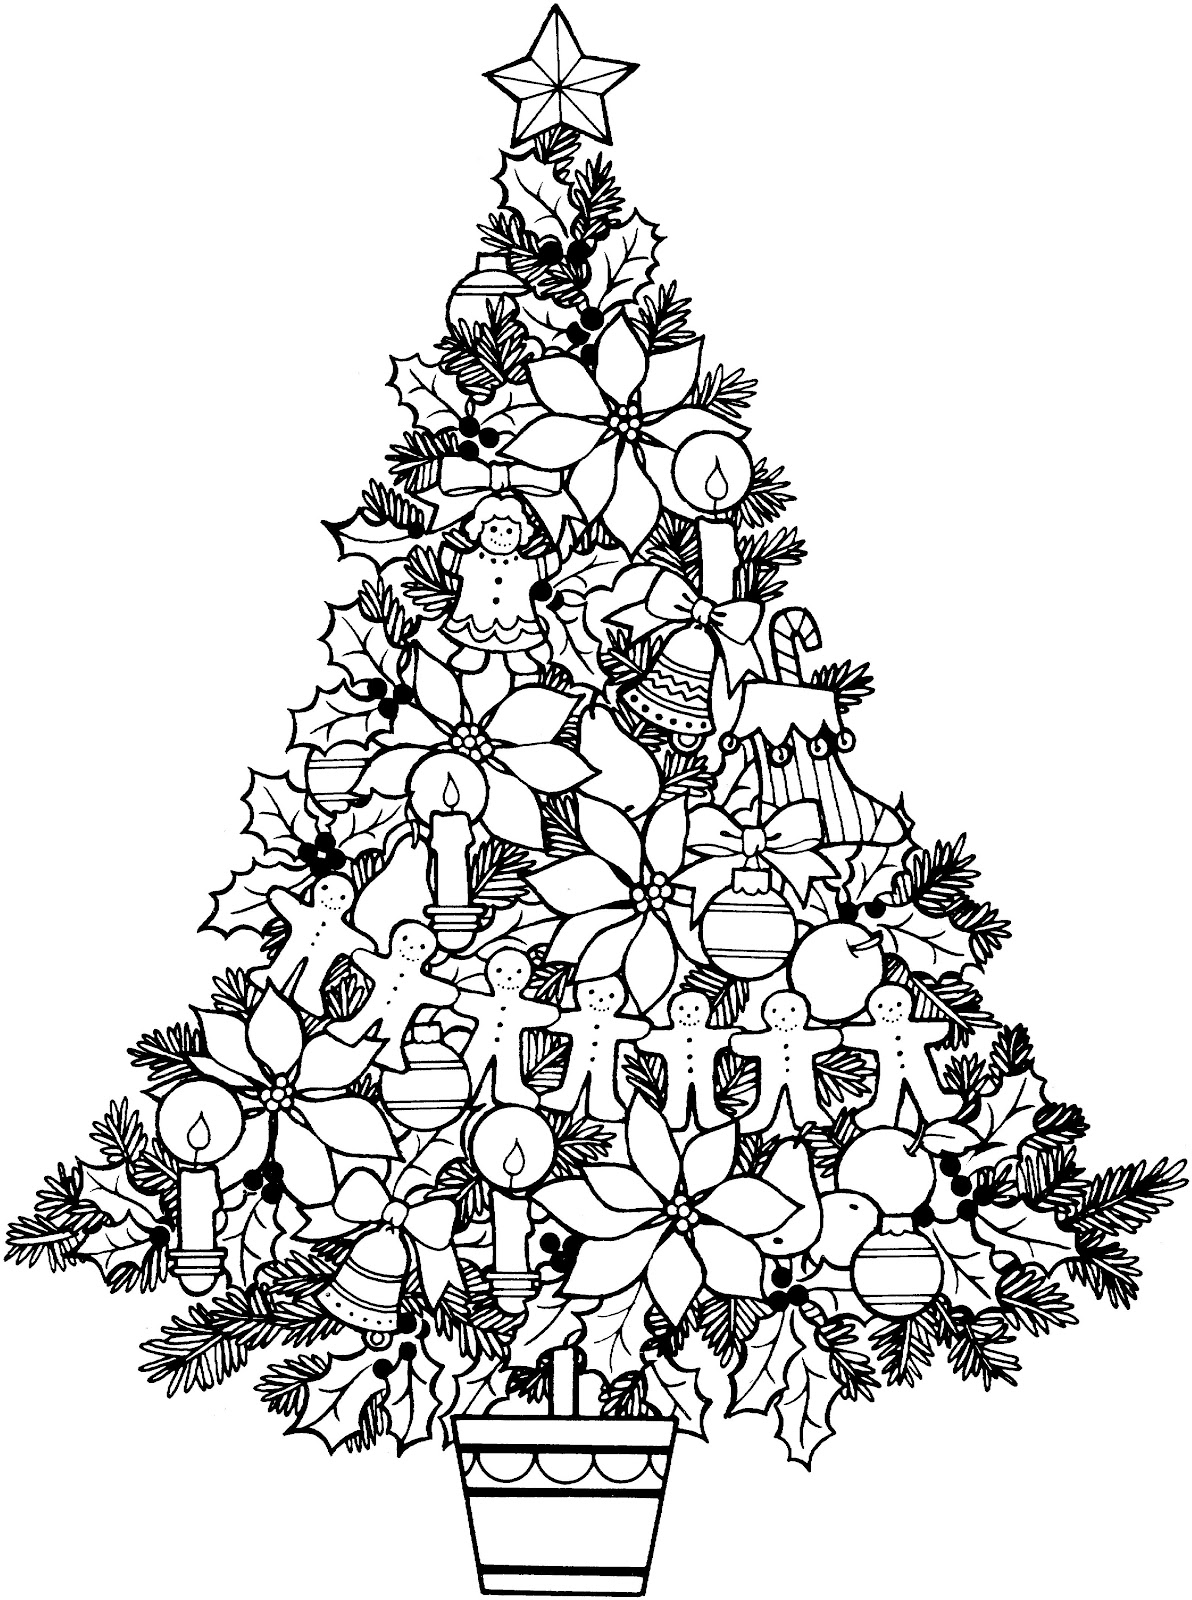 coloring christmas clipart black and white black and white christmas tree clip art free 20 free coloring black christmas and clipart white